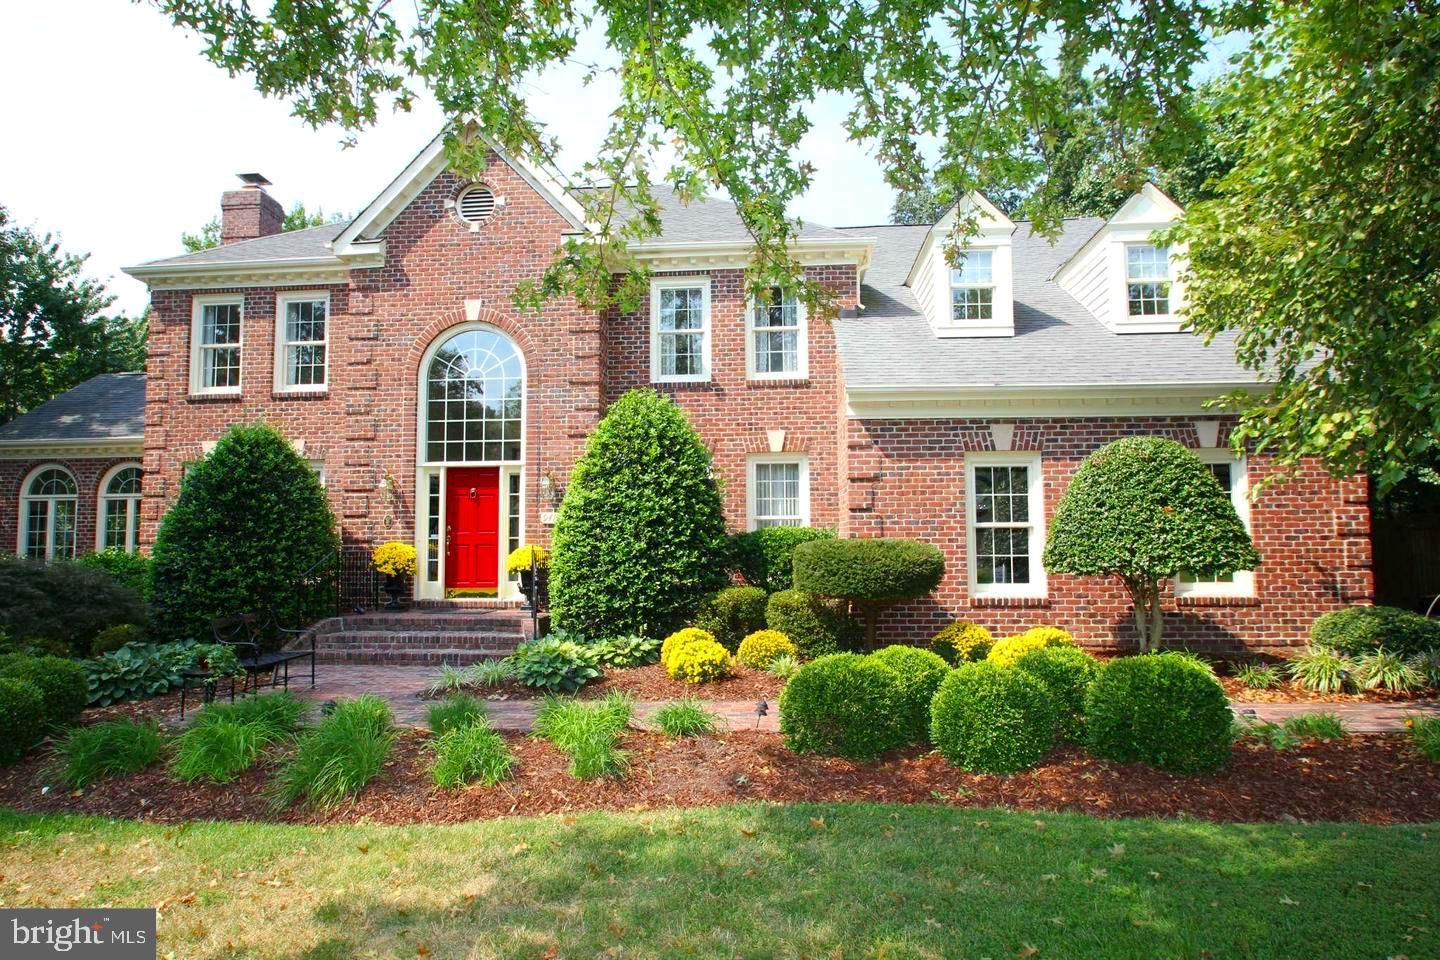 Truly Beautiful, Georgian Style Center Hall Colonial in Sought after Belle Rive, a Premier Waterfront Community in Mt. Vernon. This 5BR, 4.5 Bath, 5600+ square foot home Will Not disappoint. Beautifully Landscaped .50 acre lot with in-ground pool and charming pool house. Where to begin with this Lovely home~. The Location AMAZING, The Size HUGE, The Workmanship SUPERB.  This Beautiful Home is an original Genuario Custom Home set on one of the Original Farms of Mt. Vernon with 5 Large Bedrooms and 4.5 fully updated Bathrooms.  You~ll enter into the Grand 2 Story Foyer with Beautiful Curved Staircase, Custom Marble Floor, and Attractive Woodwork.  Formal living room has Transom Windows, Crown Molding, Gas Fireplace with Marble Surround & Beautiful Mantle, and Hard Wood Floors. The Formal Dining Room has Tray Ceiling, Beautiful Wood Working and Hardwood Floors. A Butler~s Pantry will lead you to the Gourmet Eat-In Kitchen with Granite Countertops, High-end Stainless Appliances, Gas Downdraft Cook Top, Hardwood Floors, and Subway Tiled Backsplash. Kitchen has Open views to the 2-story Family Room with Gorgeous Stone Front Wood Burning Fireplace and oversized Palladium Windows. The Main Level additionally has a Stately Office/Den with Custom Built-Ins, and what might be my Favorite Room~. A light filled Sun Room / Bonus Room with floor to ceiling Palladium Windows and French Doors leading to your Private Deck overlooking the Sparkling Pool complete with Charming Pool House.  The Sun Room is finished with New Custom Shenandoah Plantation Shutters.  Upstairs you will find the Large Master Retreat complete with 2 Walk-In Closets, Sitting Area, Cathedral Ceiling, and Beautiful Windows with Plantation Shutters.  The Master Bath has 2 Separate Upgraded Vanities, Large Soaking Tub, Separate Glass  & Tile Shower.  Don~t forget to check out the Linen Closet in the Master.  Upstairs has a  2nd Bedroom with Full Bathroom Ensuite. The large 3rd & 4th Bedrooms share a beautifully upd